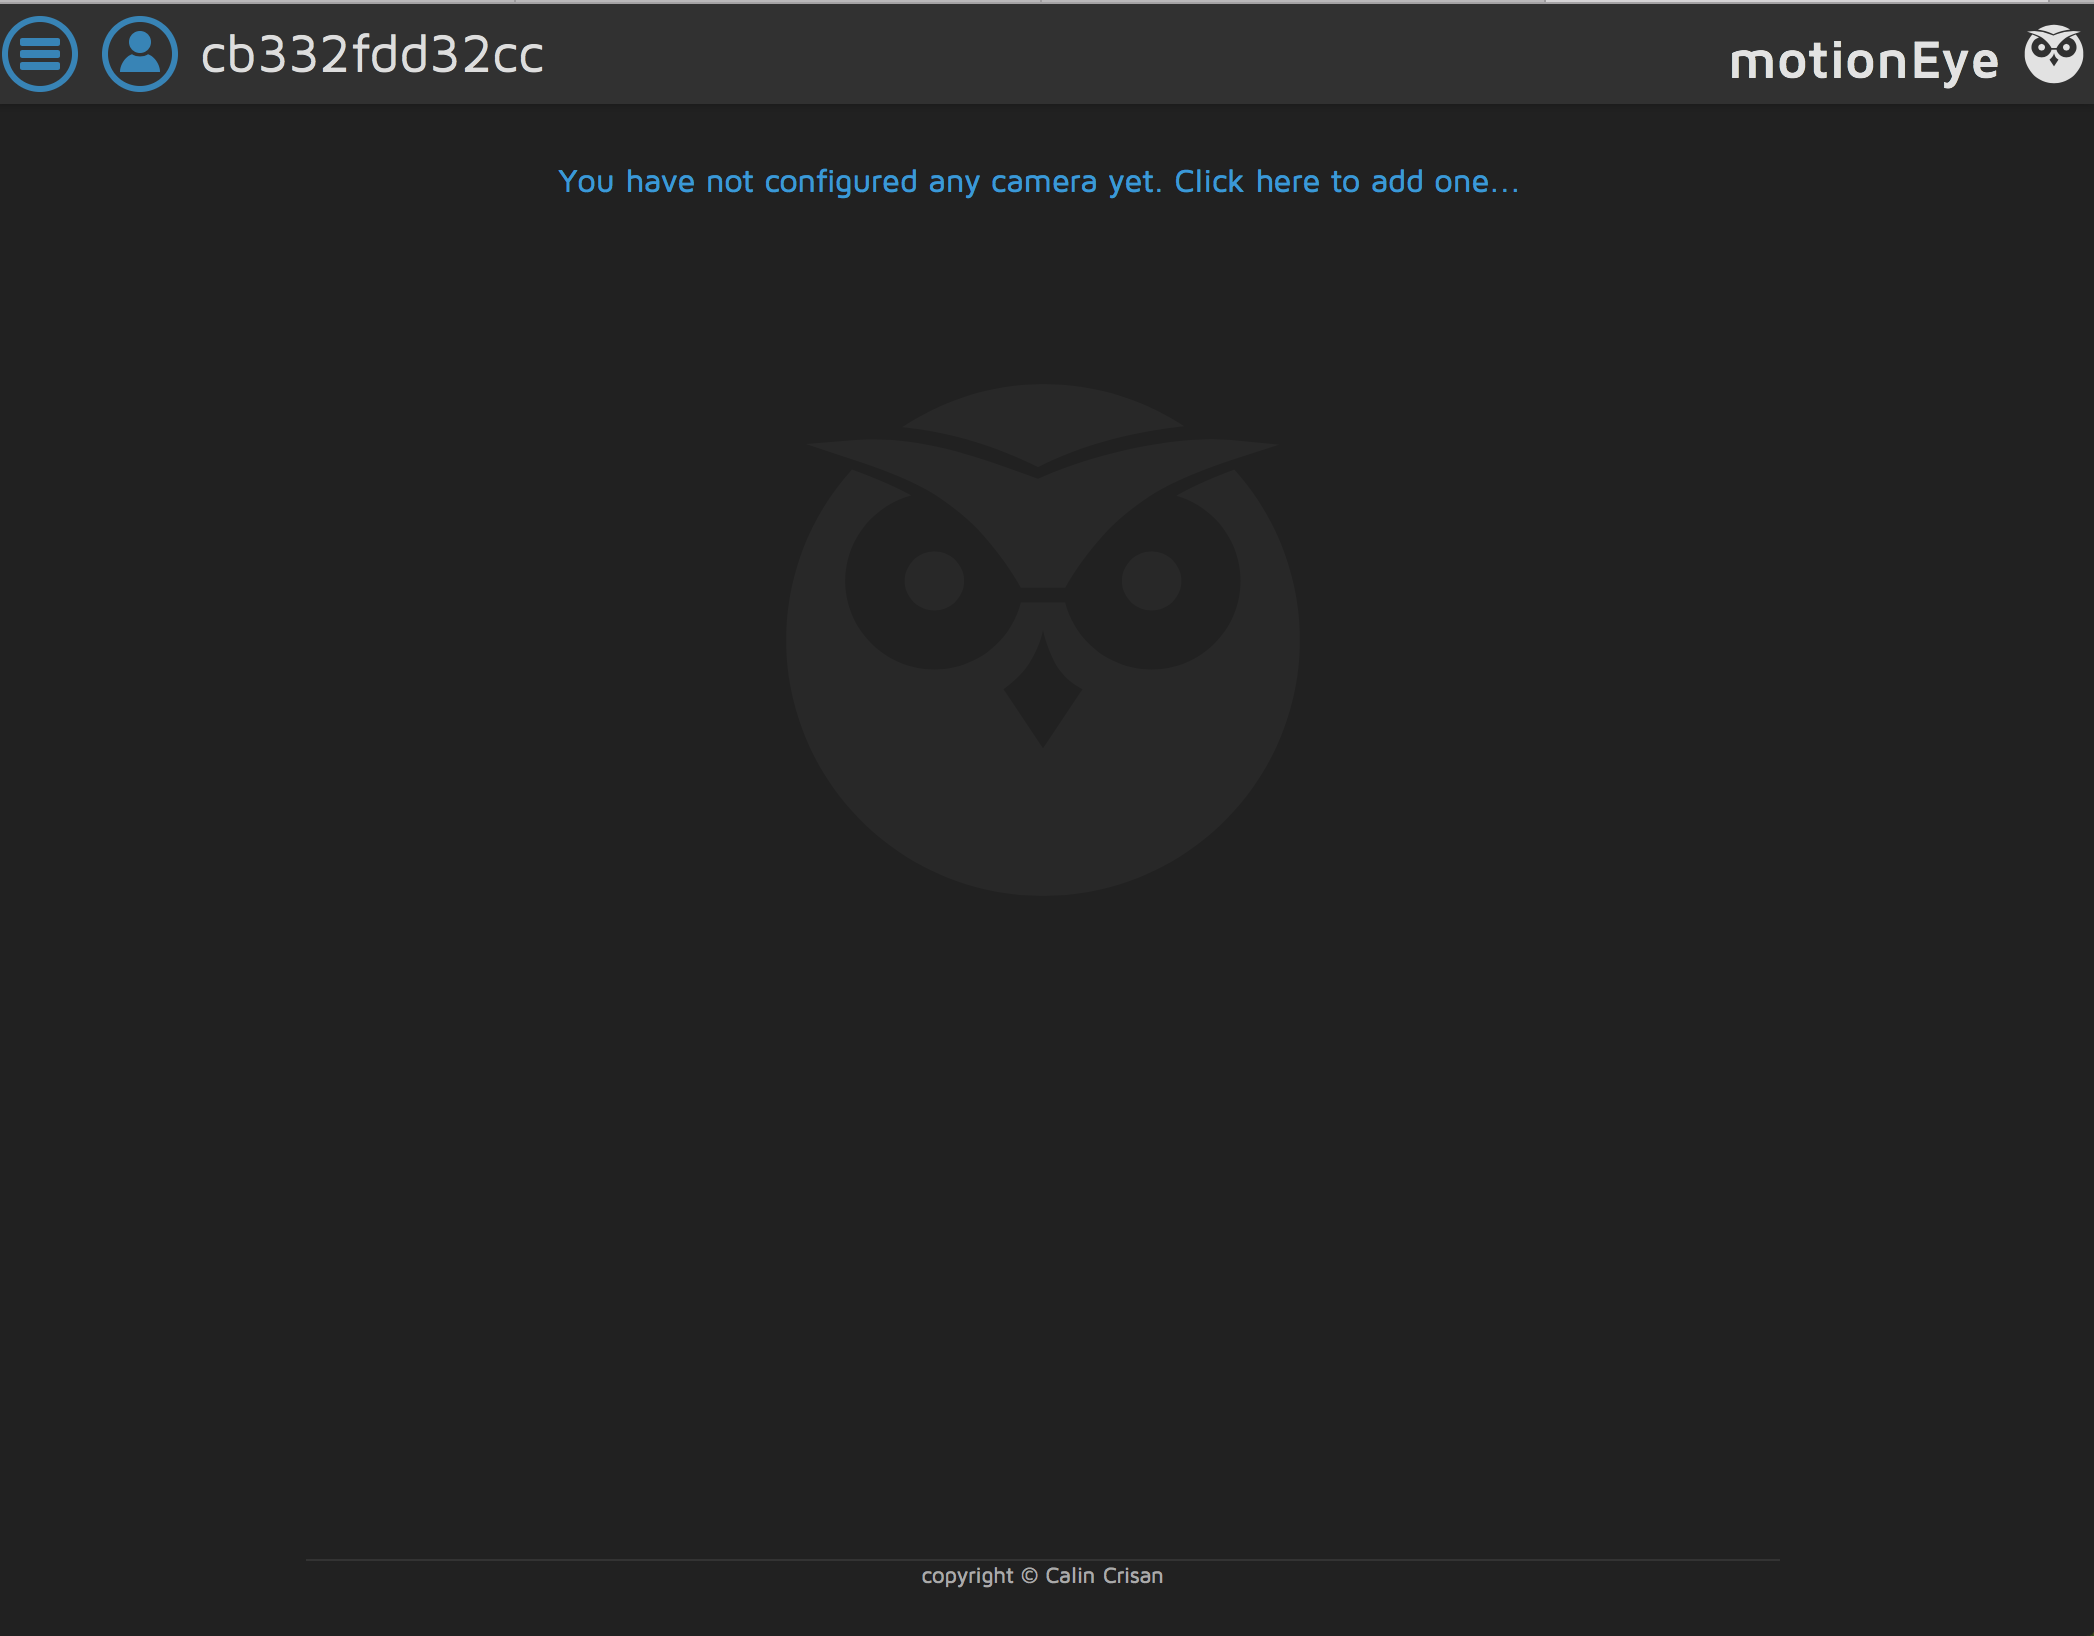 Connecting MotioneyeOS Camera to Motioneye Hub · Issue #970